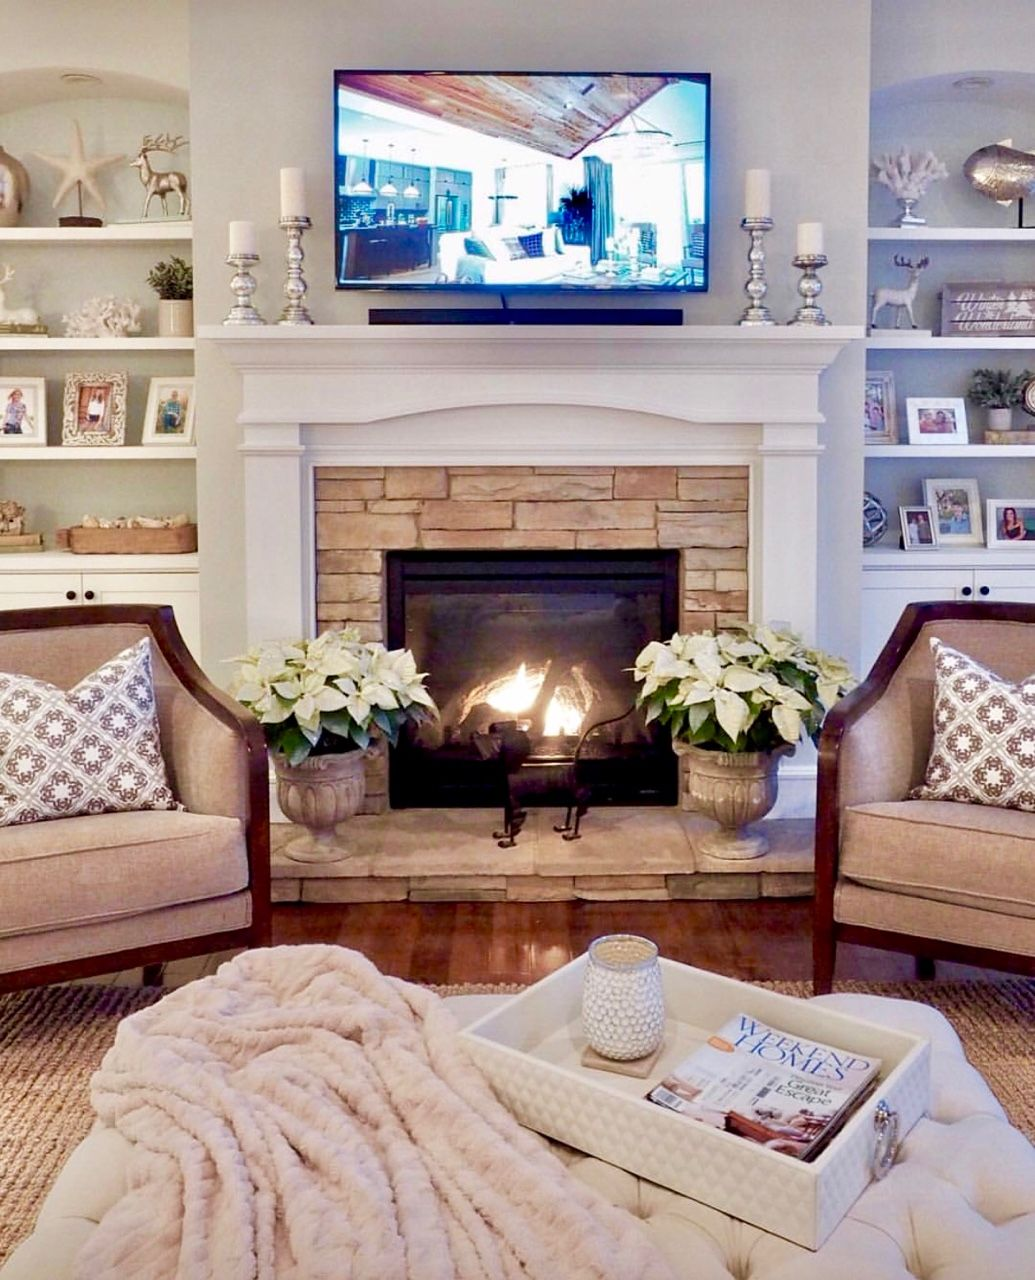 Darling Let S Be Adventurers Home Living Room With Firep